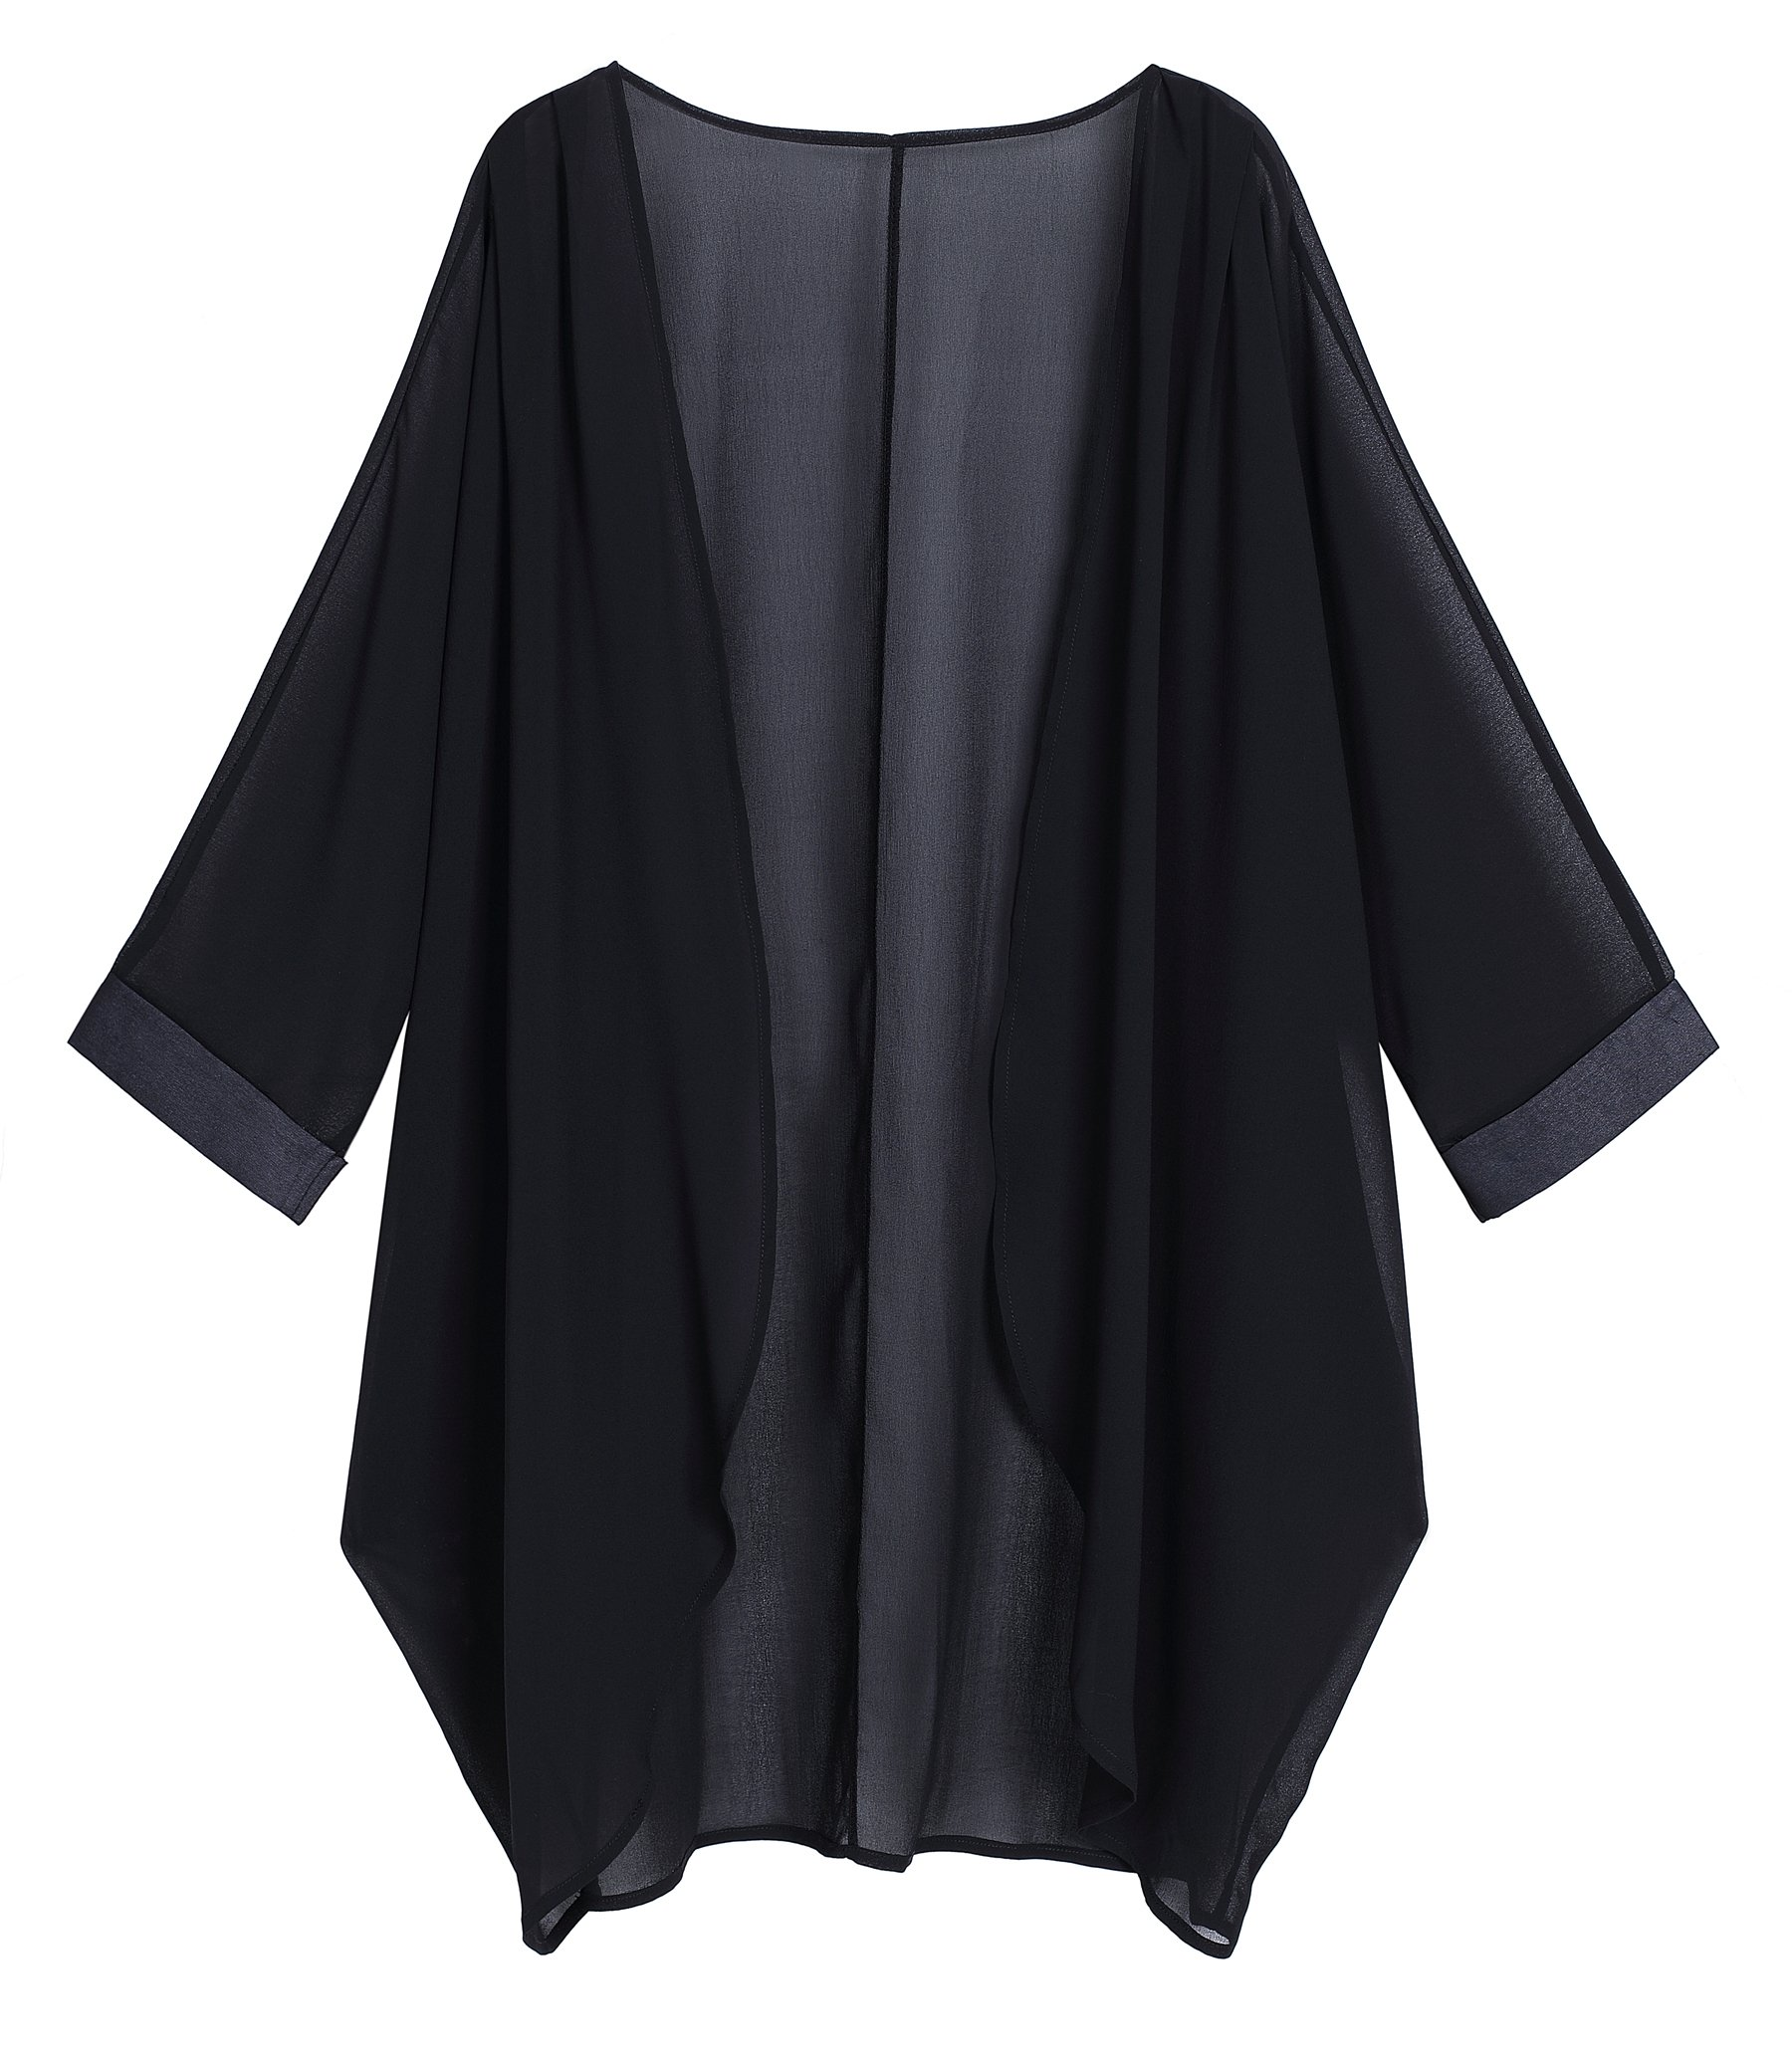 OLRAIN Women's Floral Print Sheer Chiffon Loose Kimono Cardigan Capes (X-Large, Black-1)